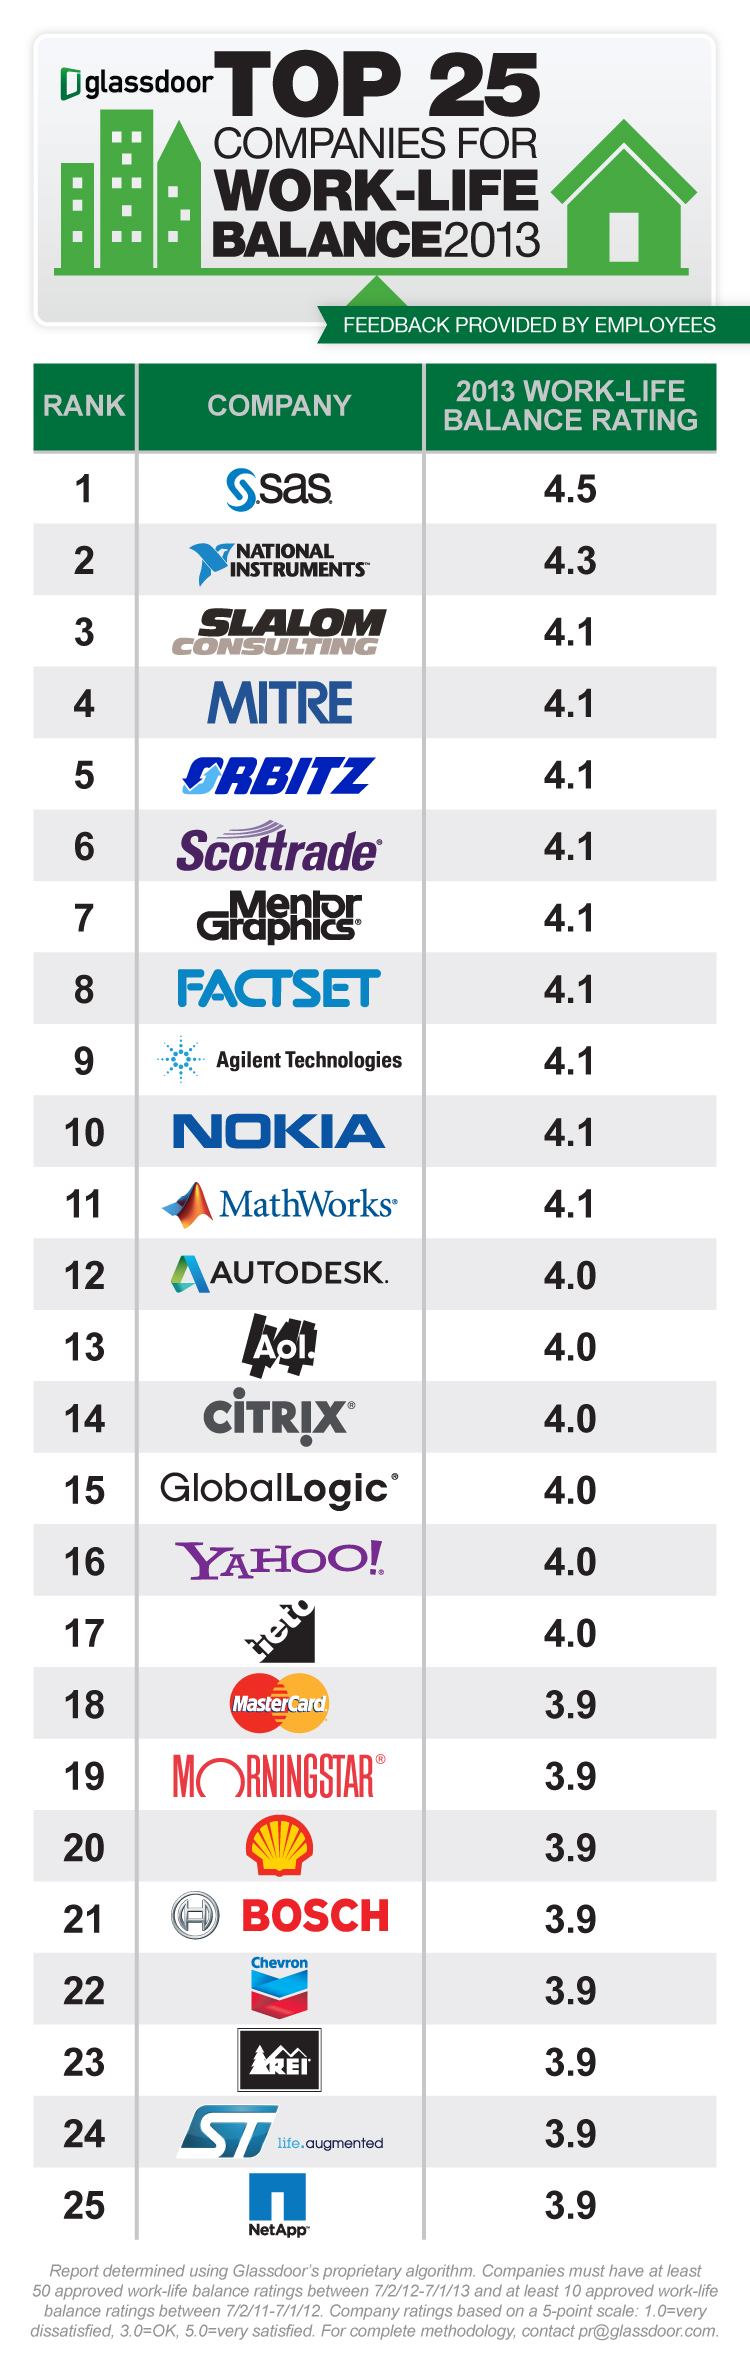 Weekly Wrap: Employees Rank Top 25 Companies for Work-Life